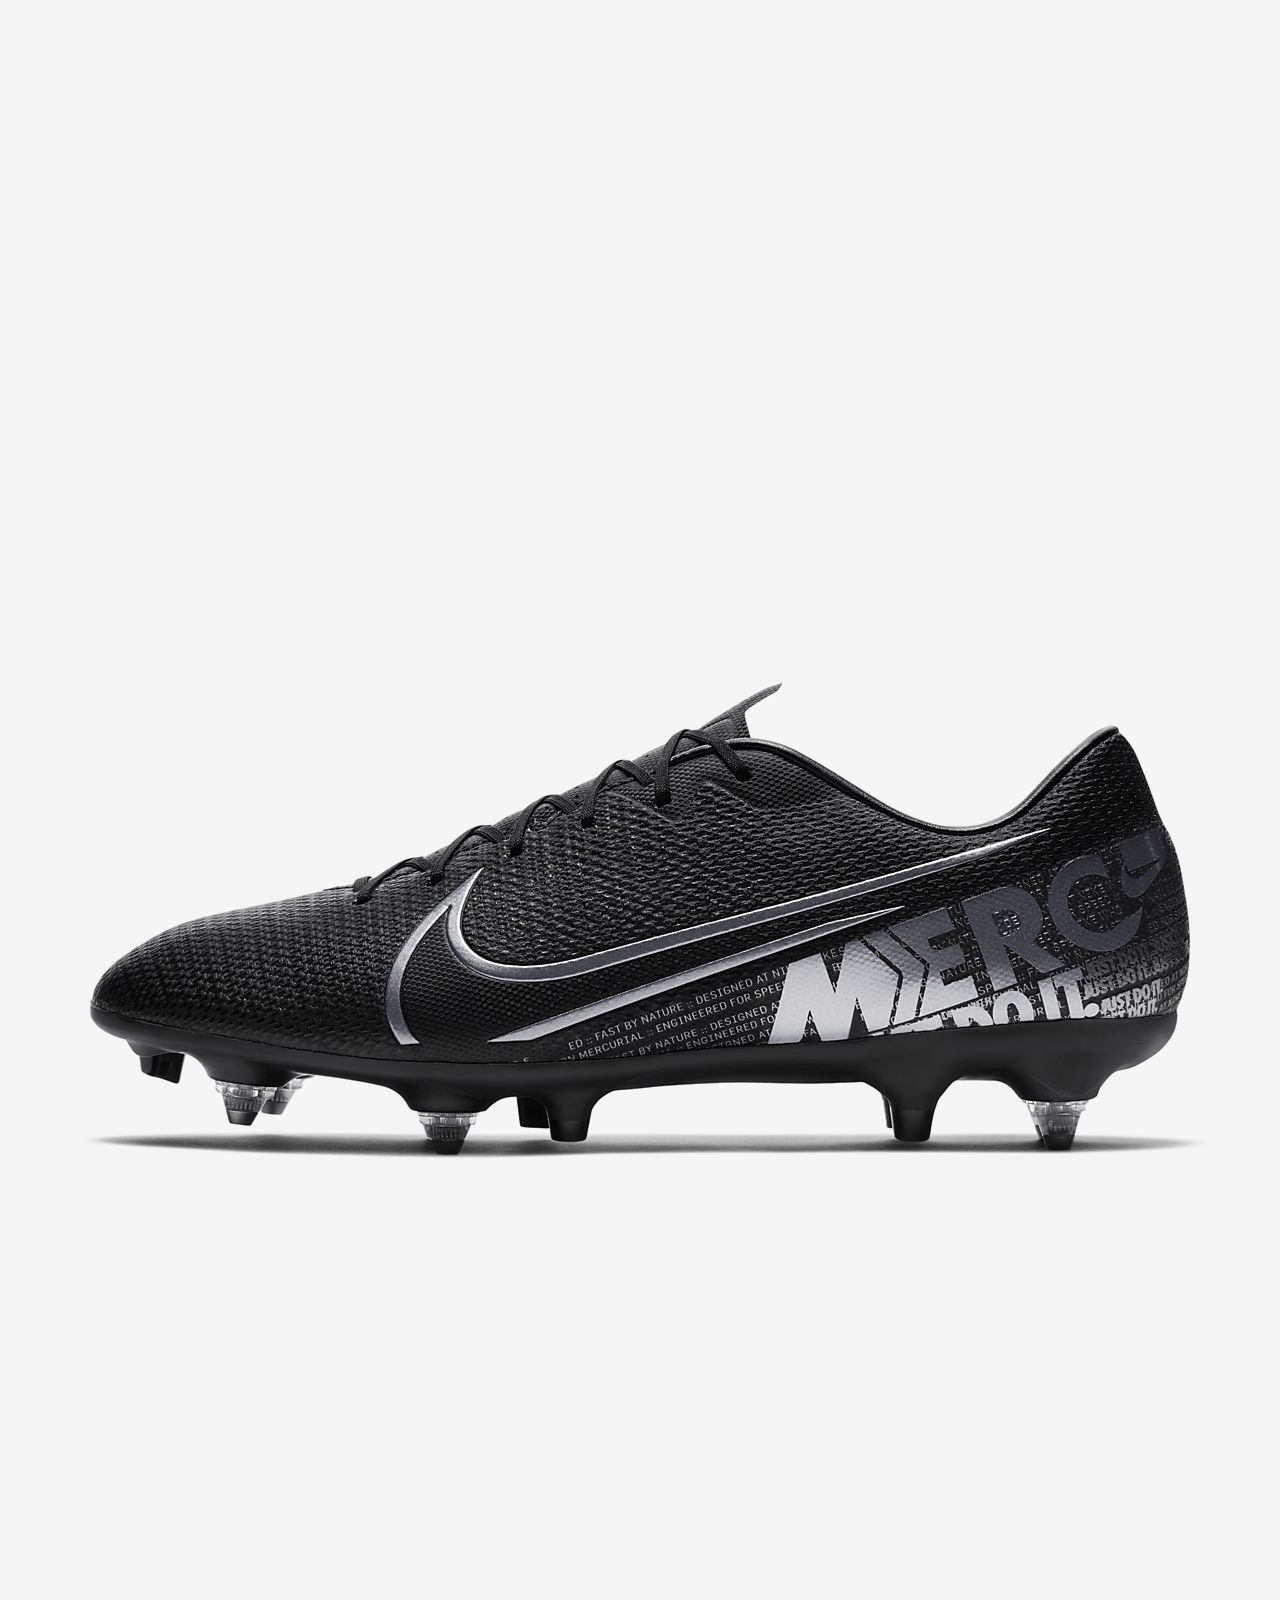 quality products offer discounts low priced Chaussure de football à crampons pour terrain gras Nike Mercurial Vapor 13  Academy SG-PRO Anti-Clog Traction